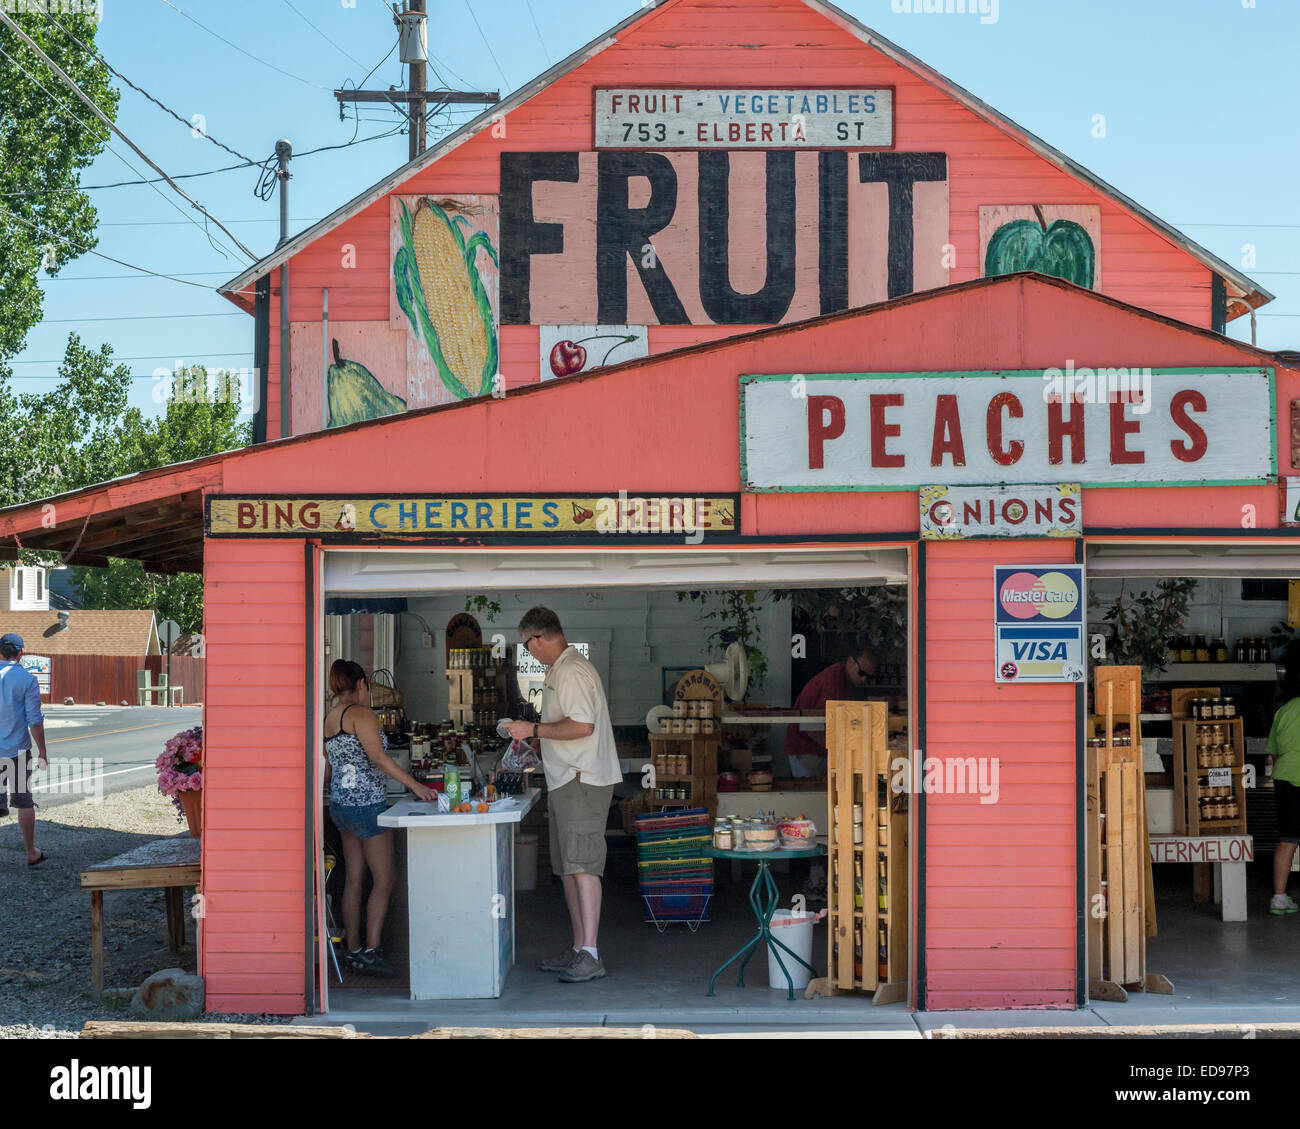 Herman les fruits et légumes. Palissade. Le Nouveau Mexique. USA Photo Stock